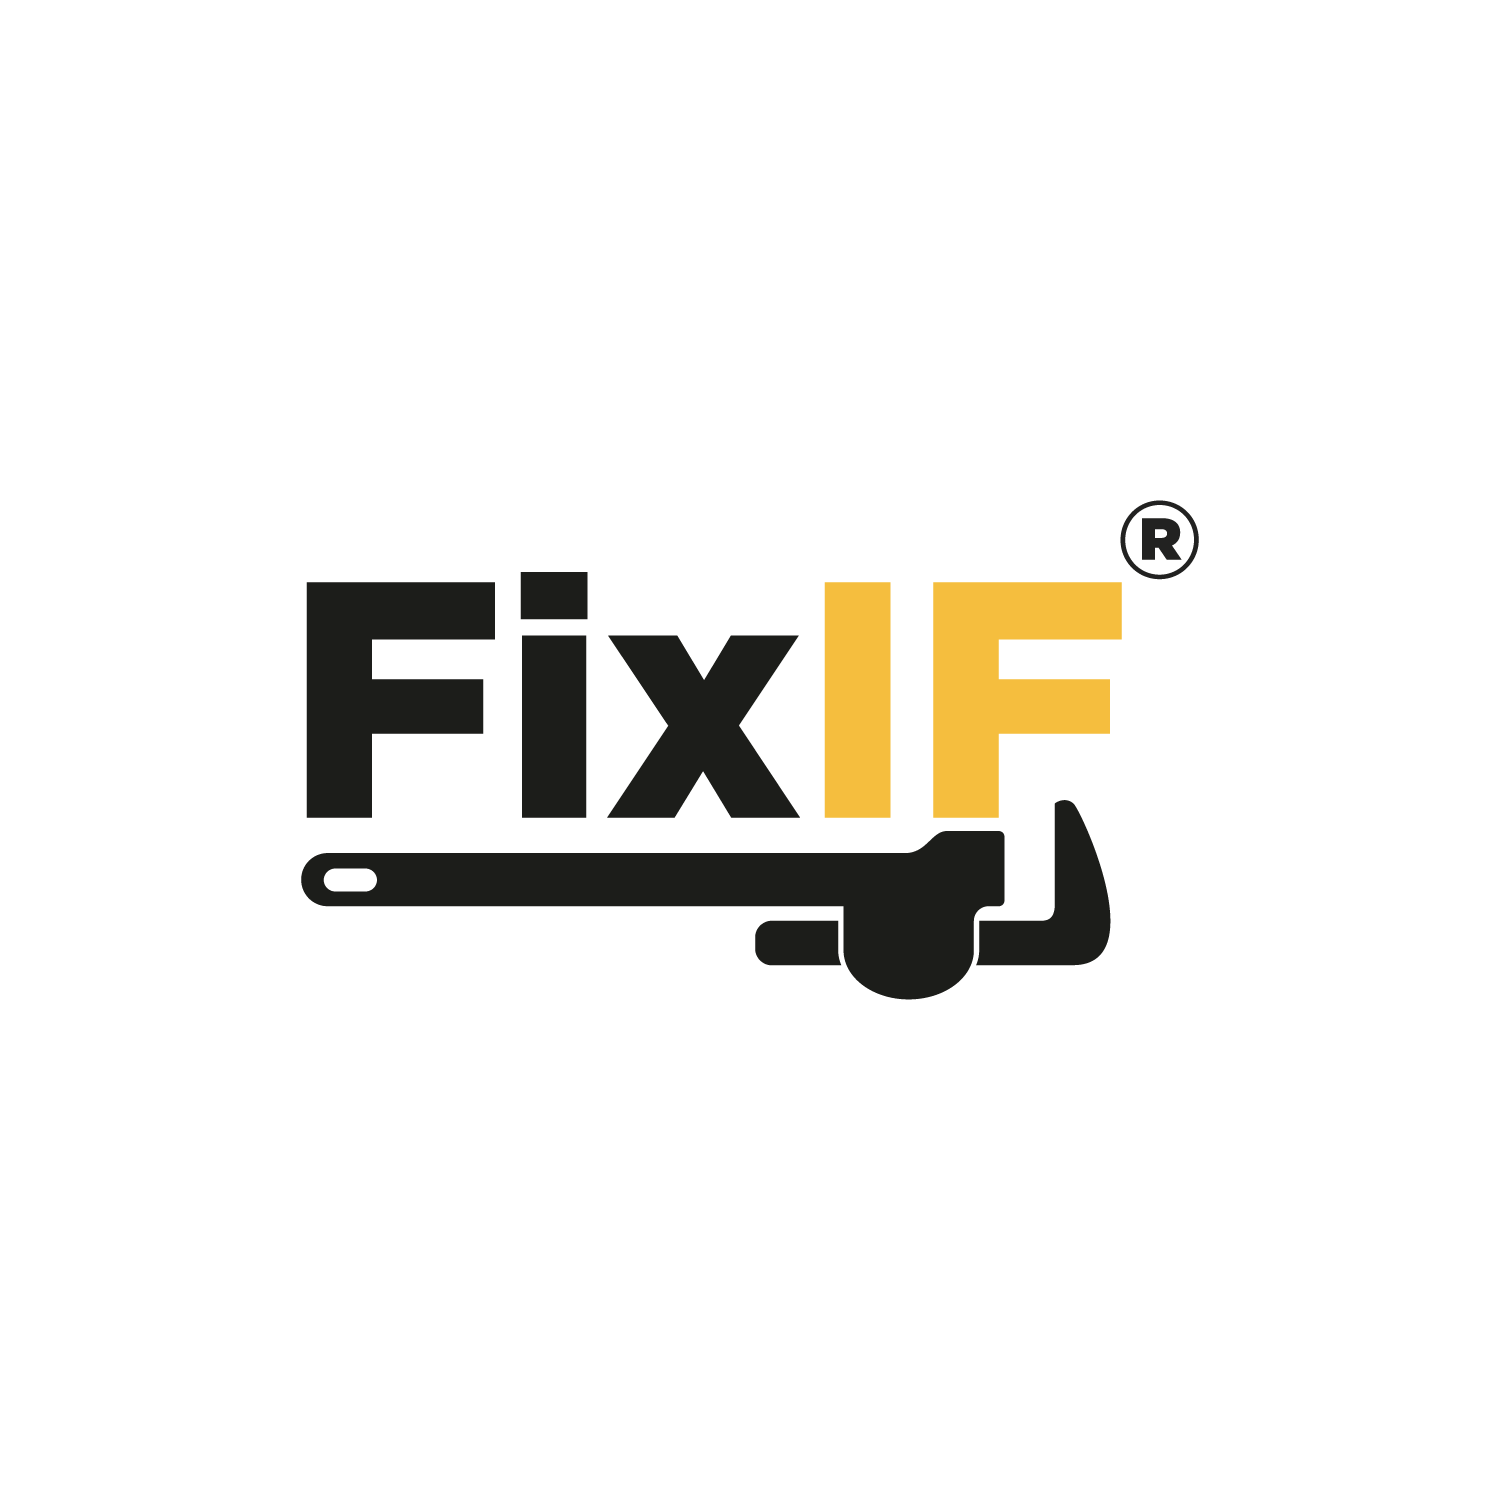 FixIF Emergency Plumber in Swaffham Bulbeck